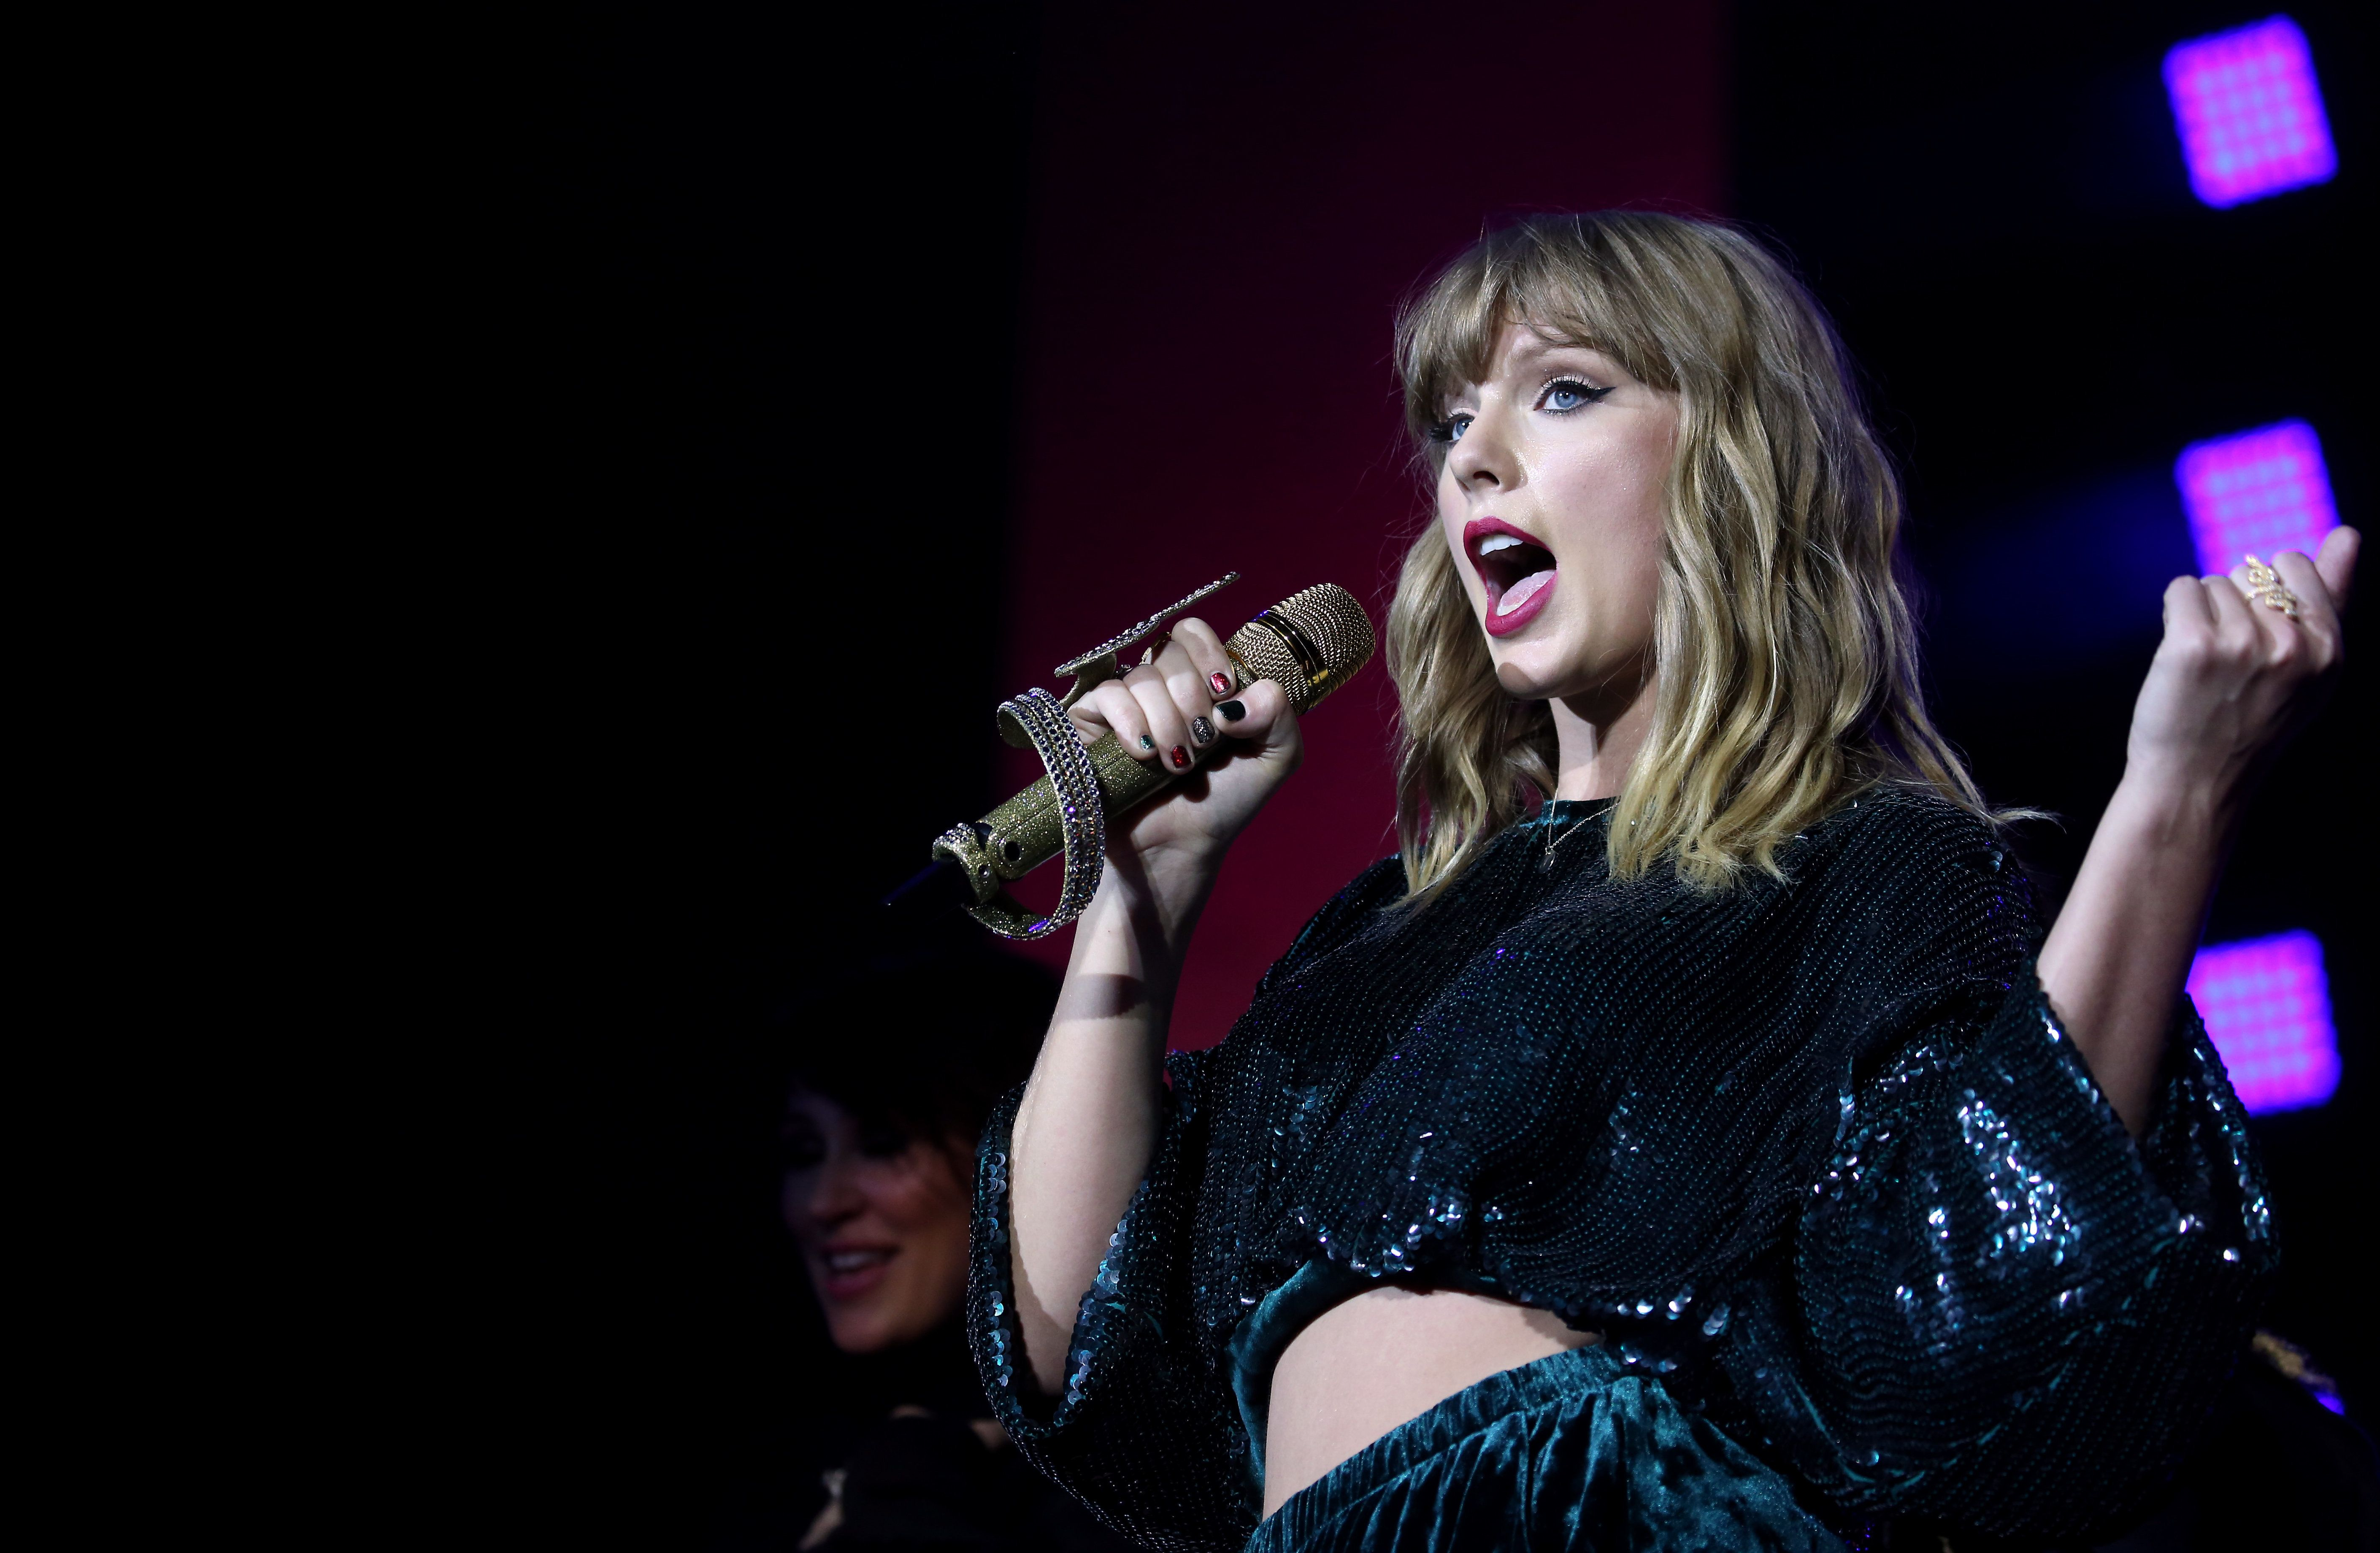 Taylor Swift performs on stage during day two of Capital's Jingle Bell Ball with Coca-Cola at London's O2 Arena. (Photo by Isabel Infantes/PA Images via Getty Images)